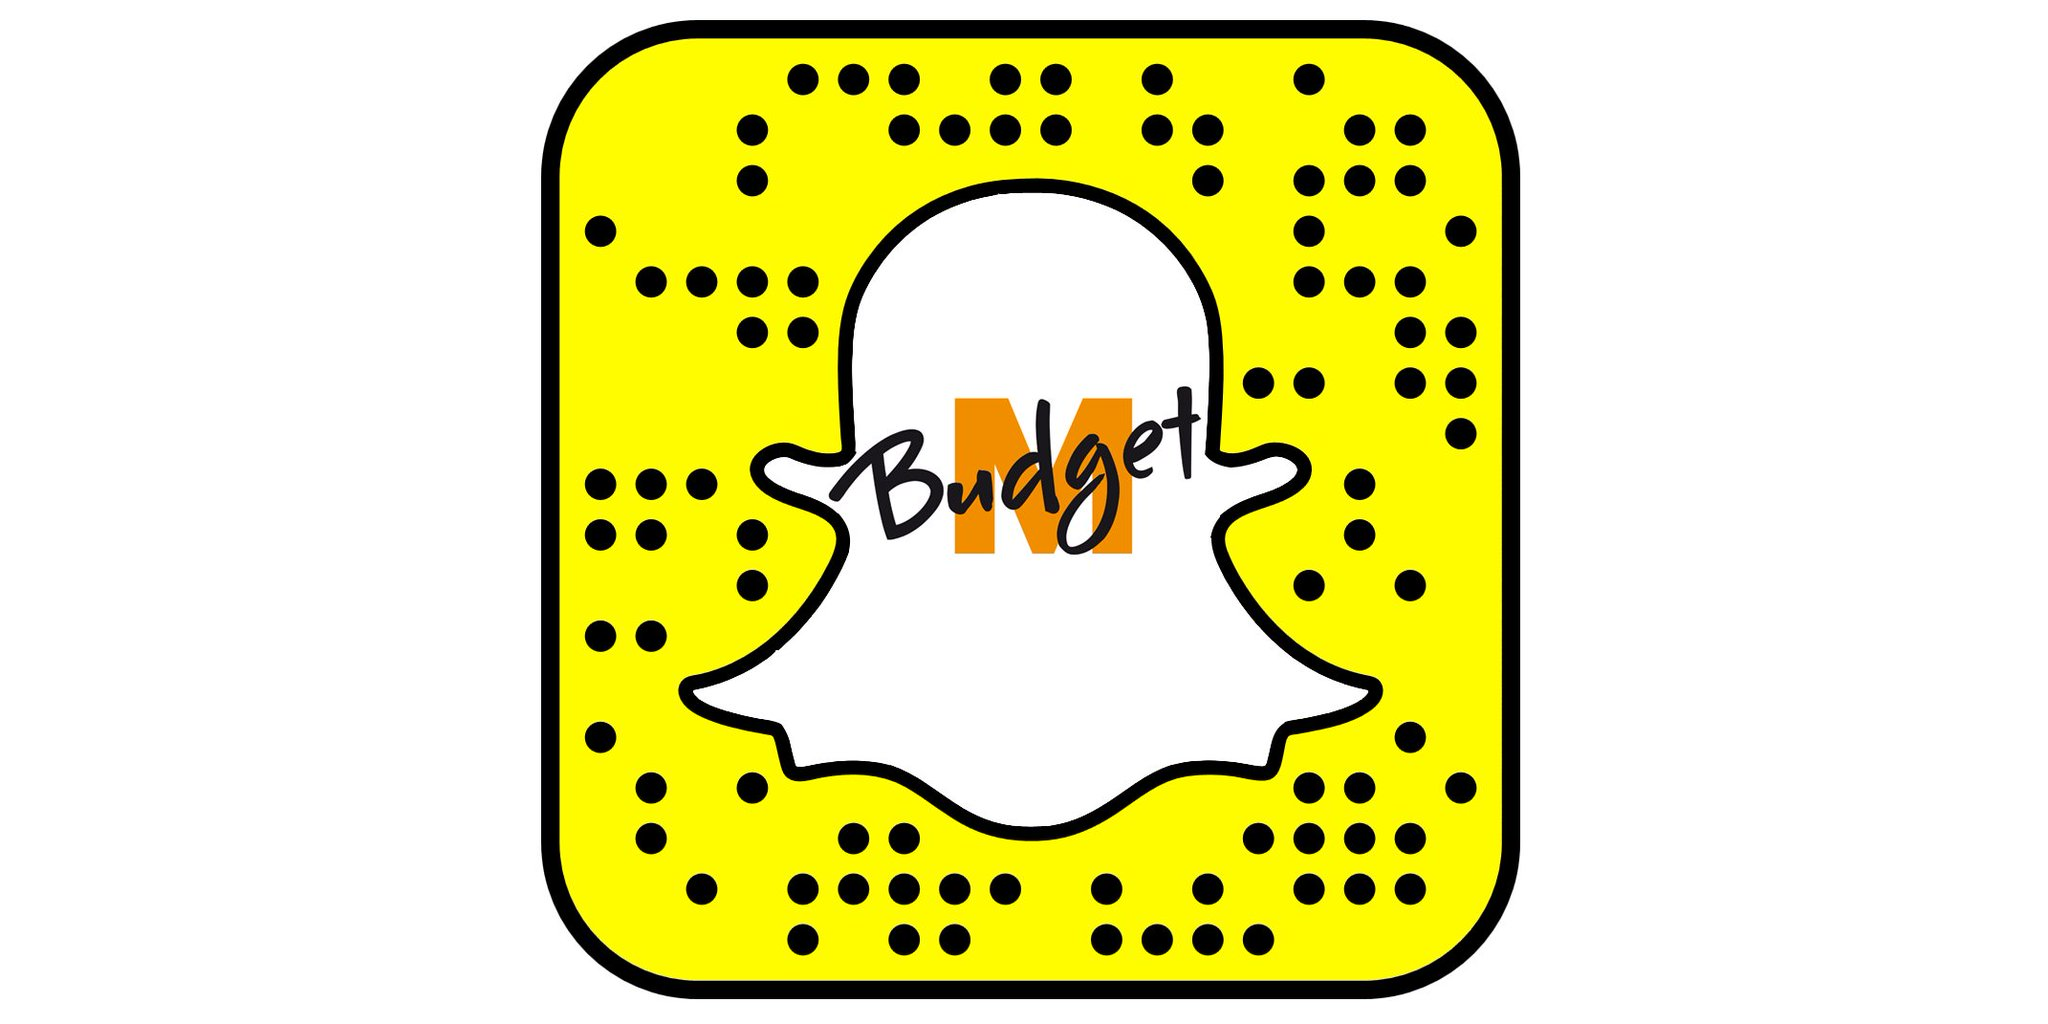 migros on twitter m budget ist jetzt auf snapchat jetzt adden https. Black Bedroom Furniture Sets. Home Design Ideas